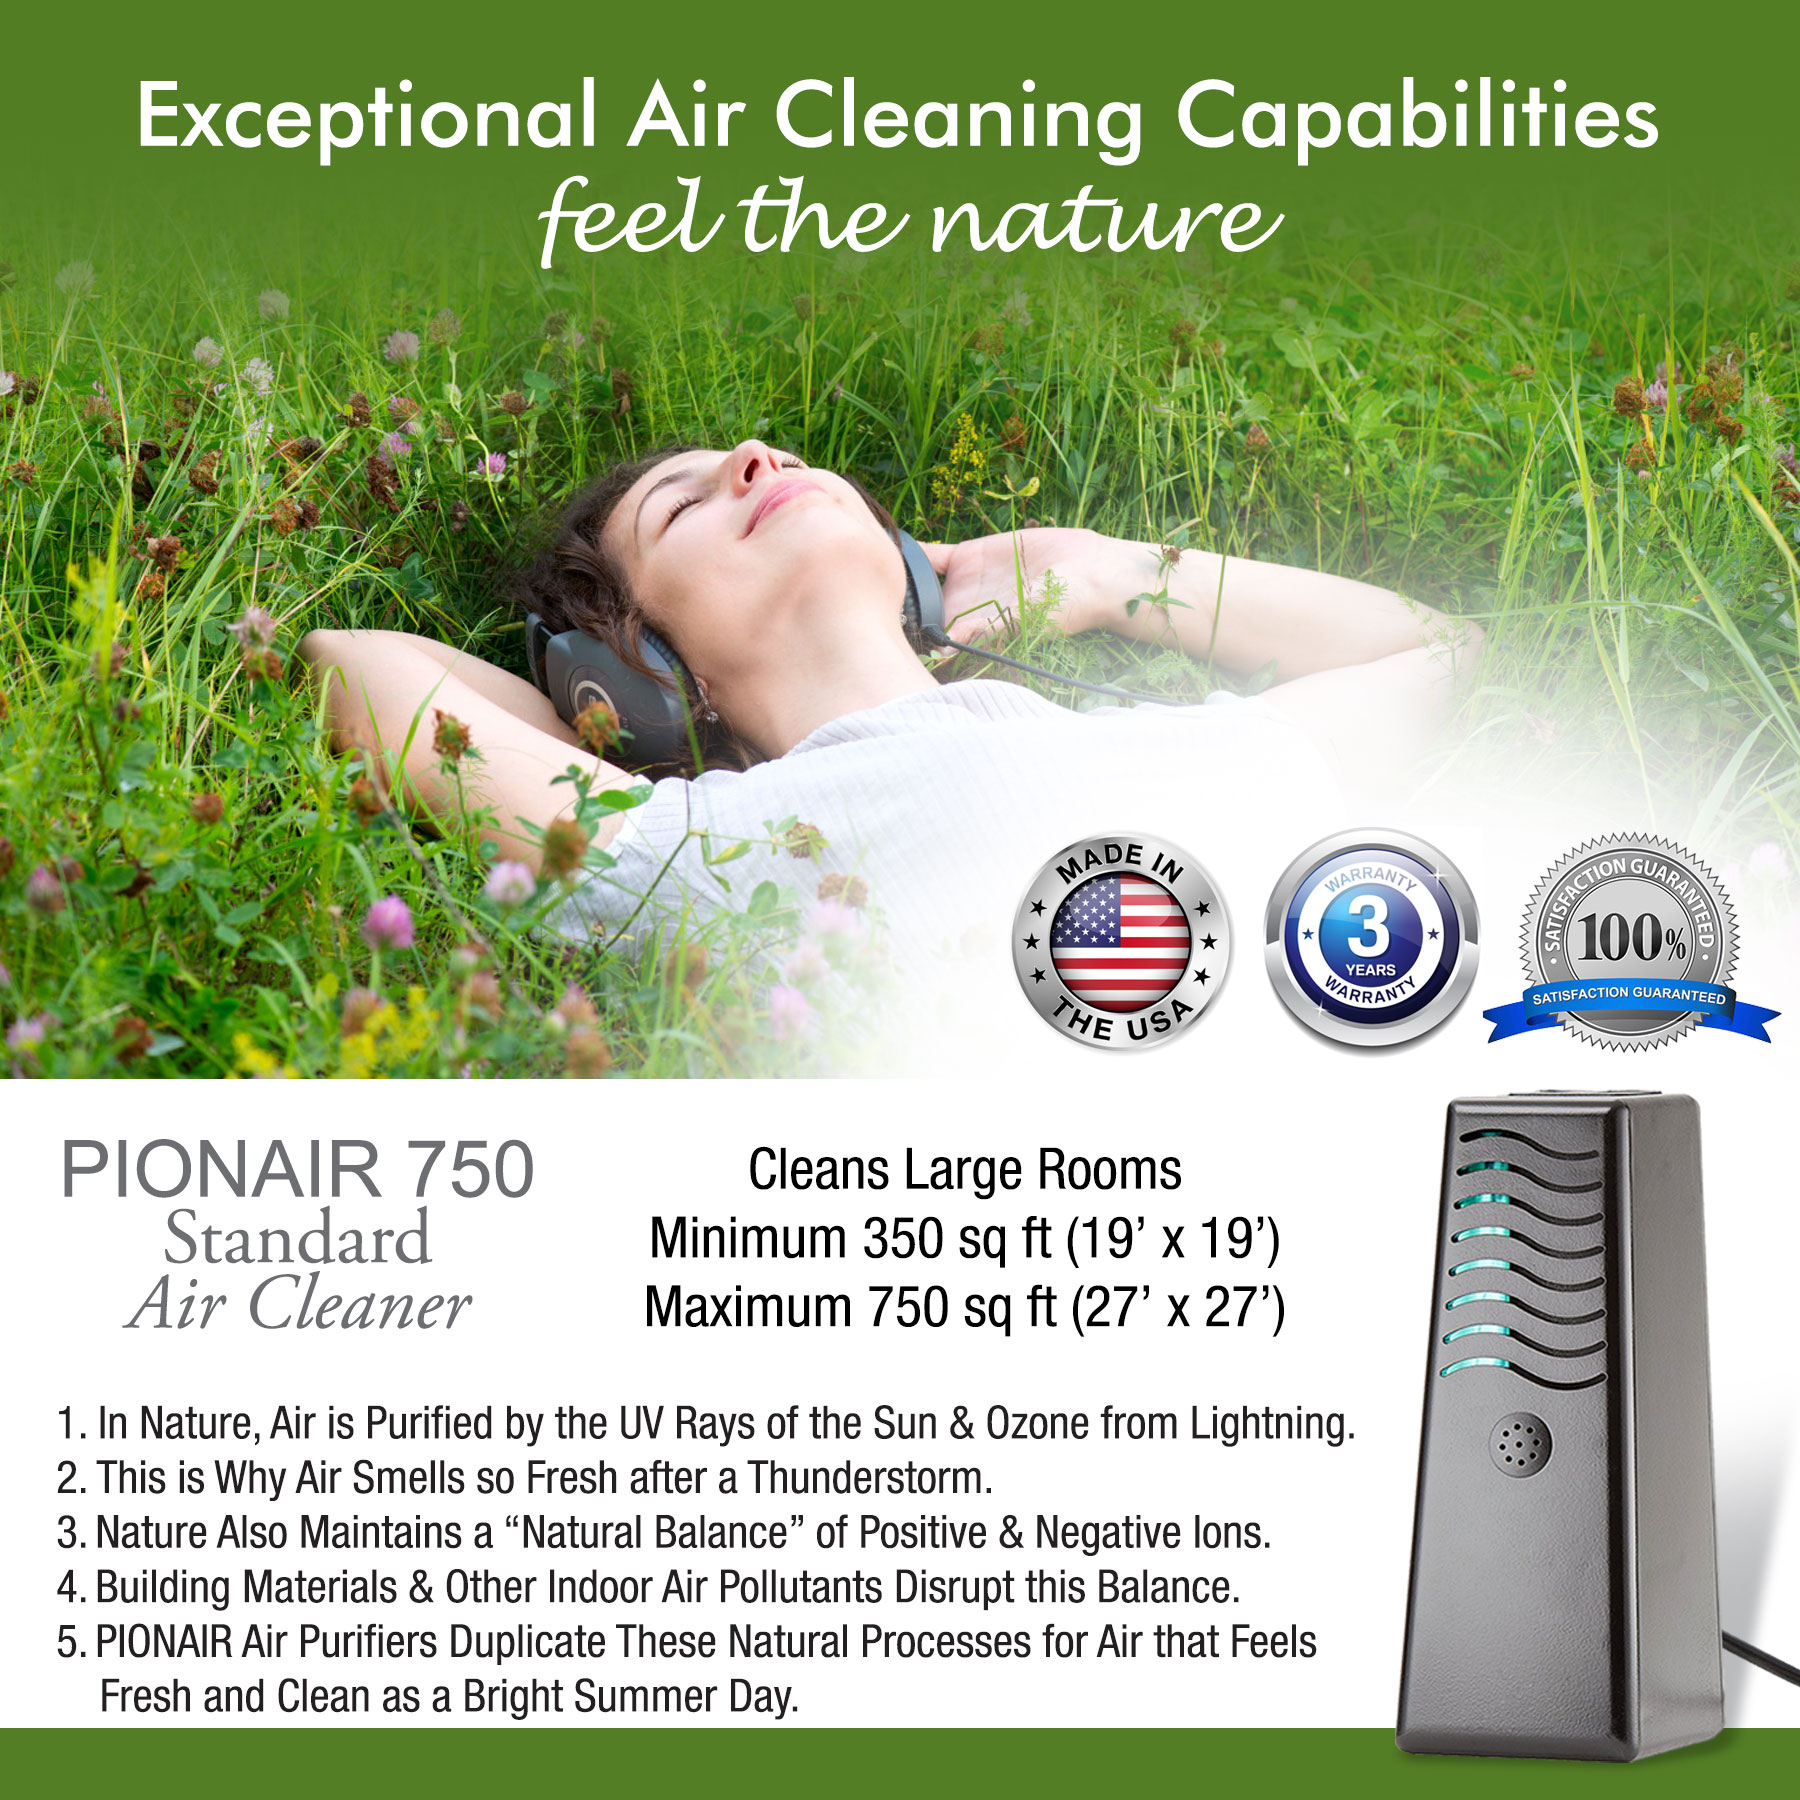 PIONAIR 750 - 4-in-1 Air Purification System